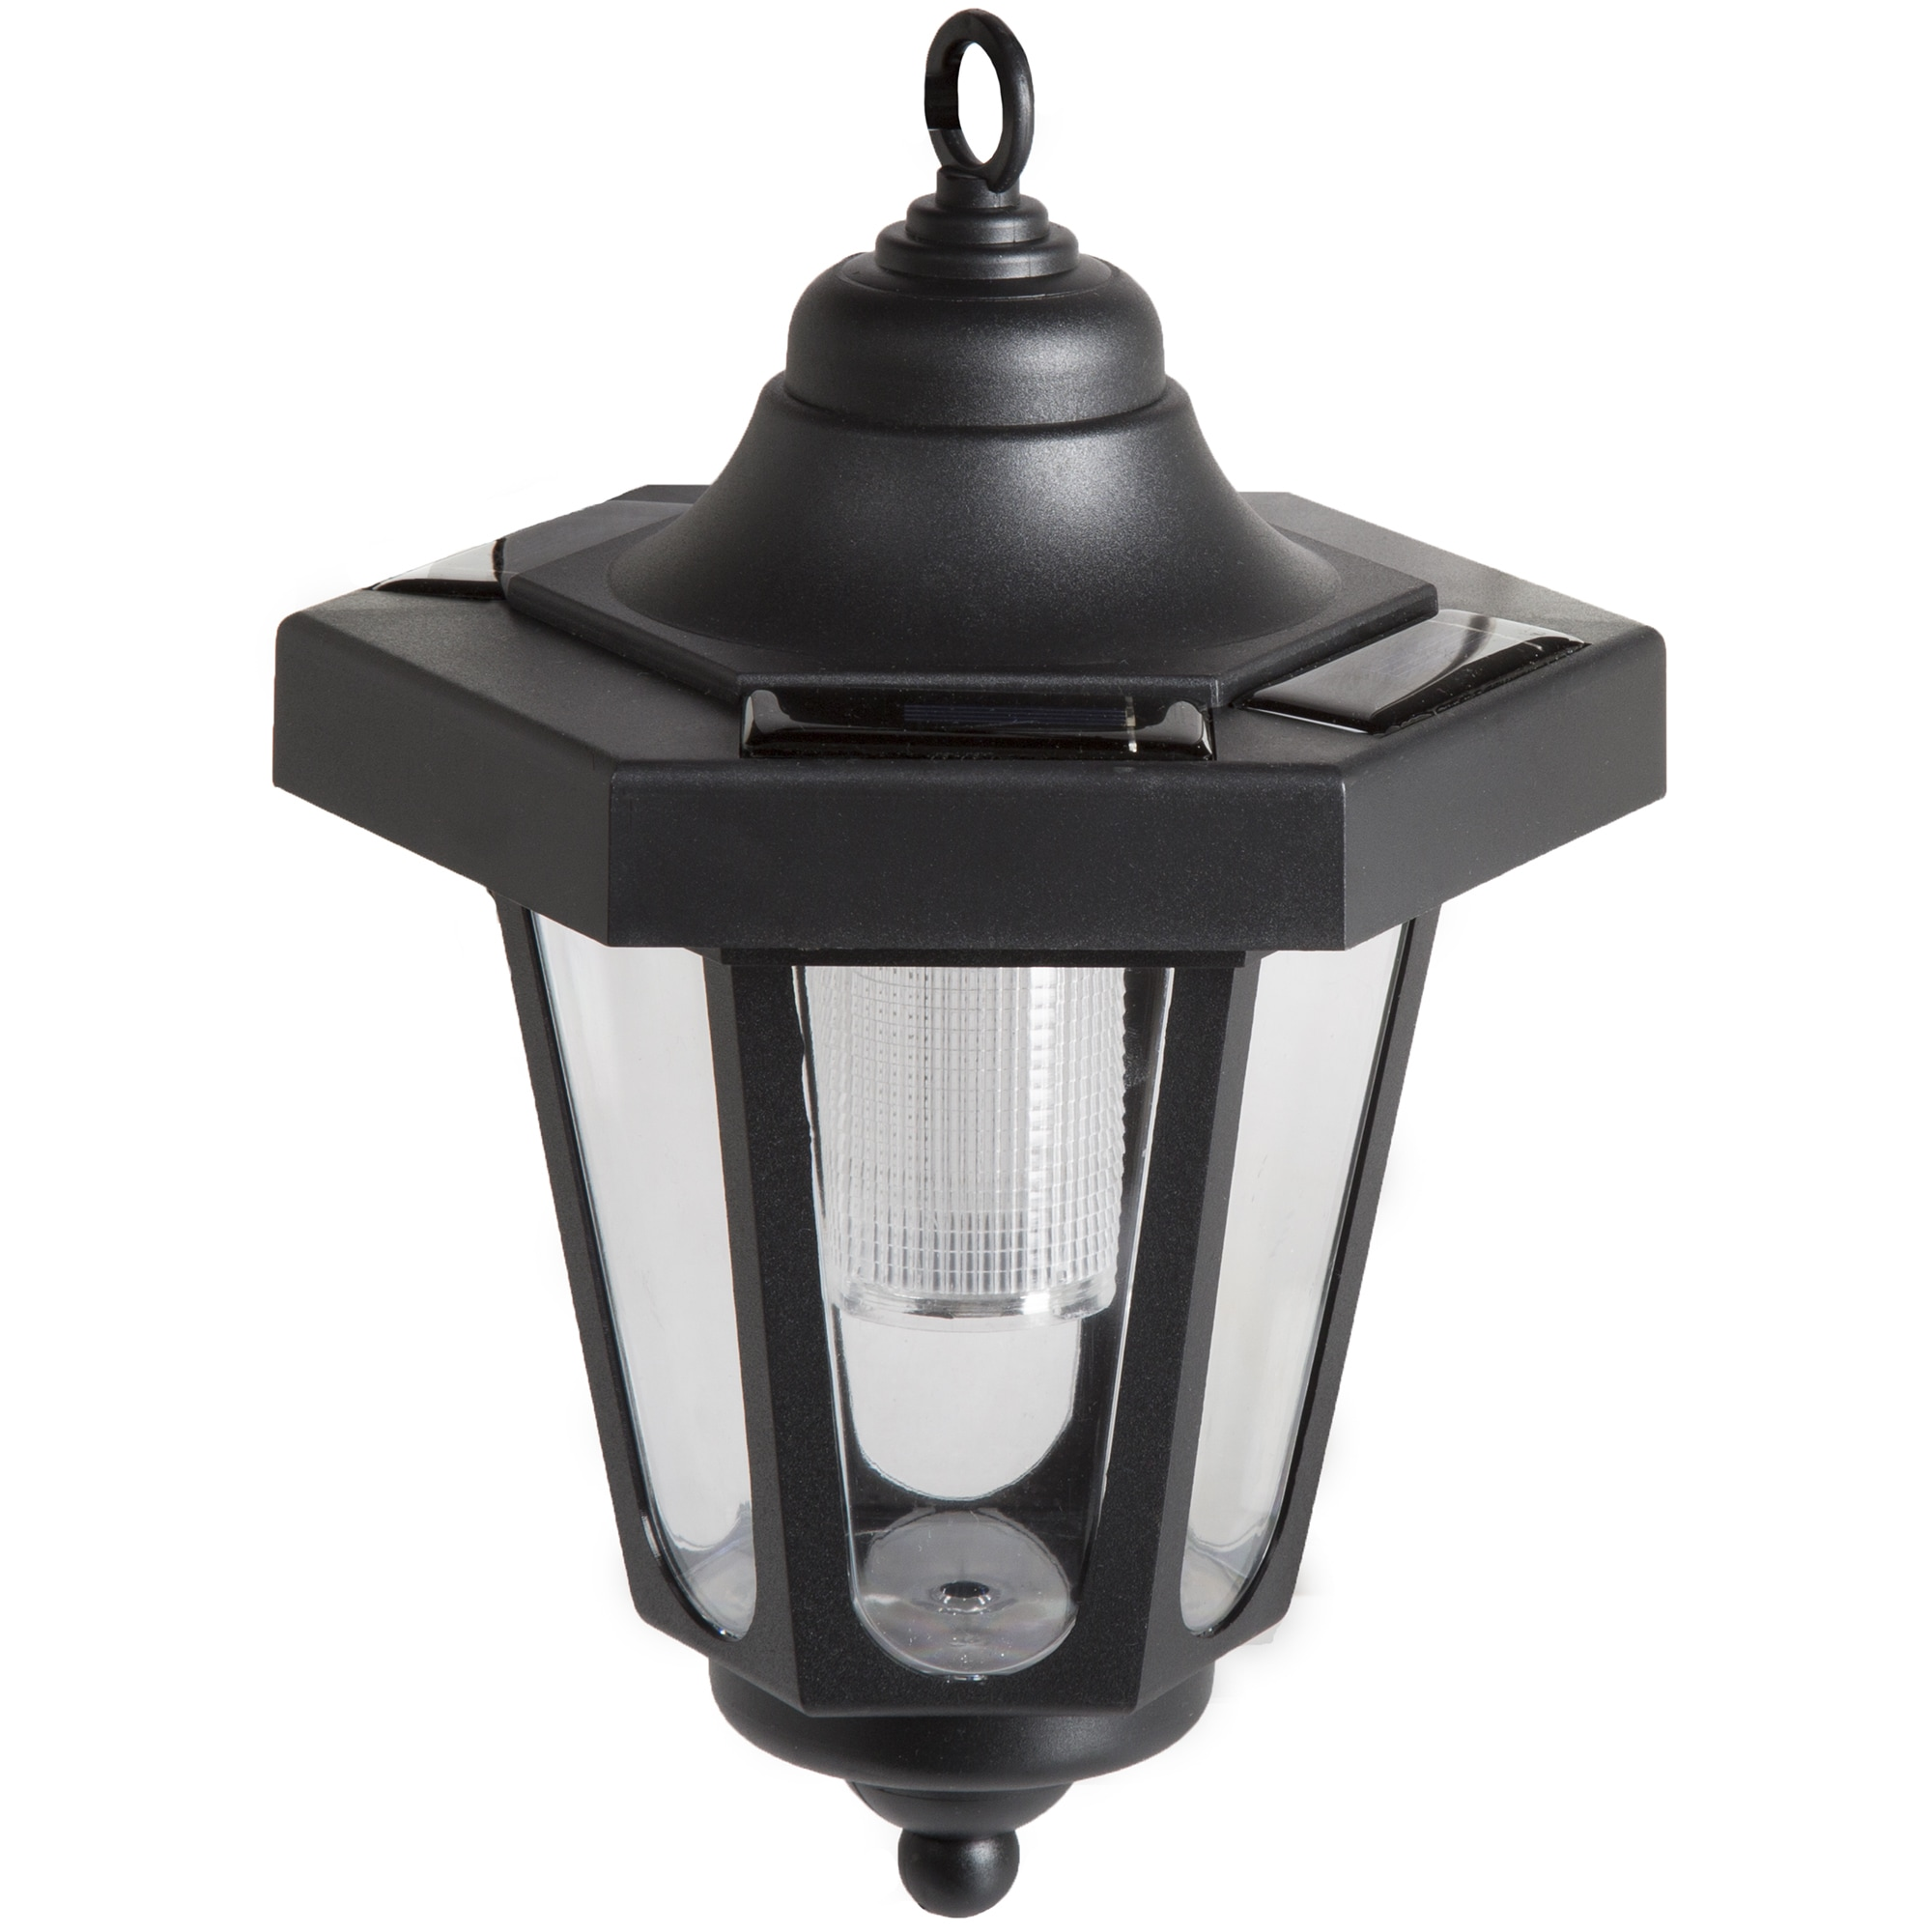 Pure Garden Solar Led Black Hanging Coach Lantern Set Of 2 On Free Shipping Orders Over 45 12084732